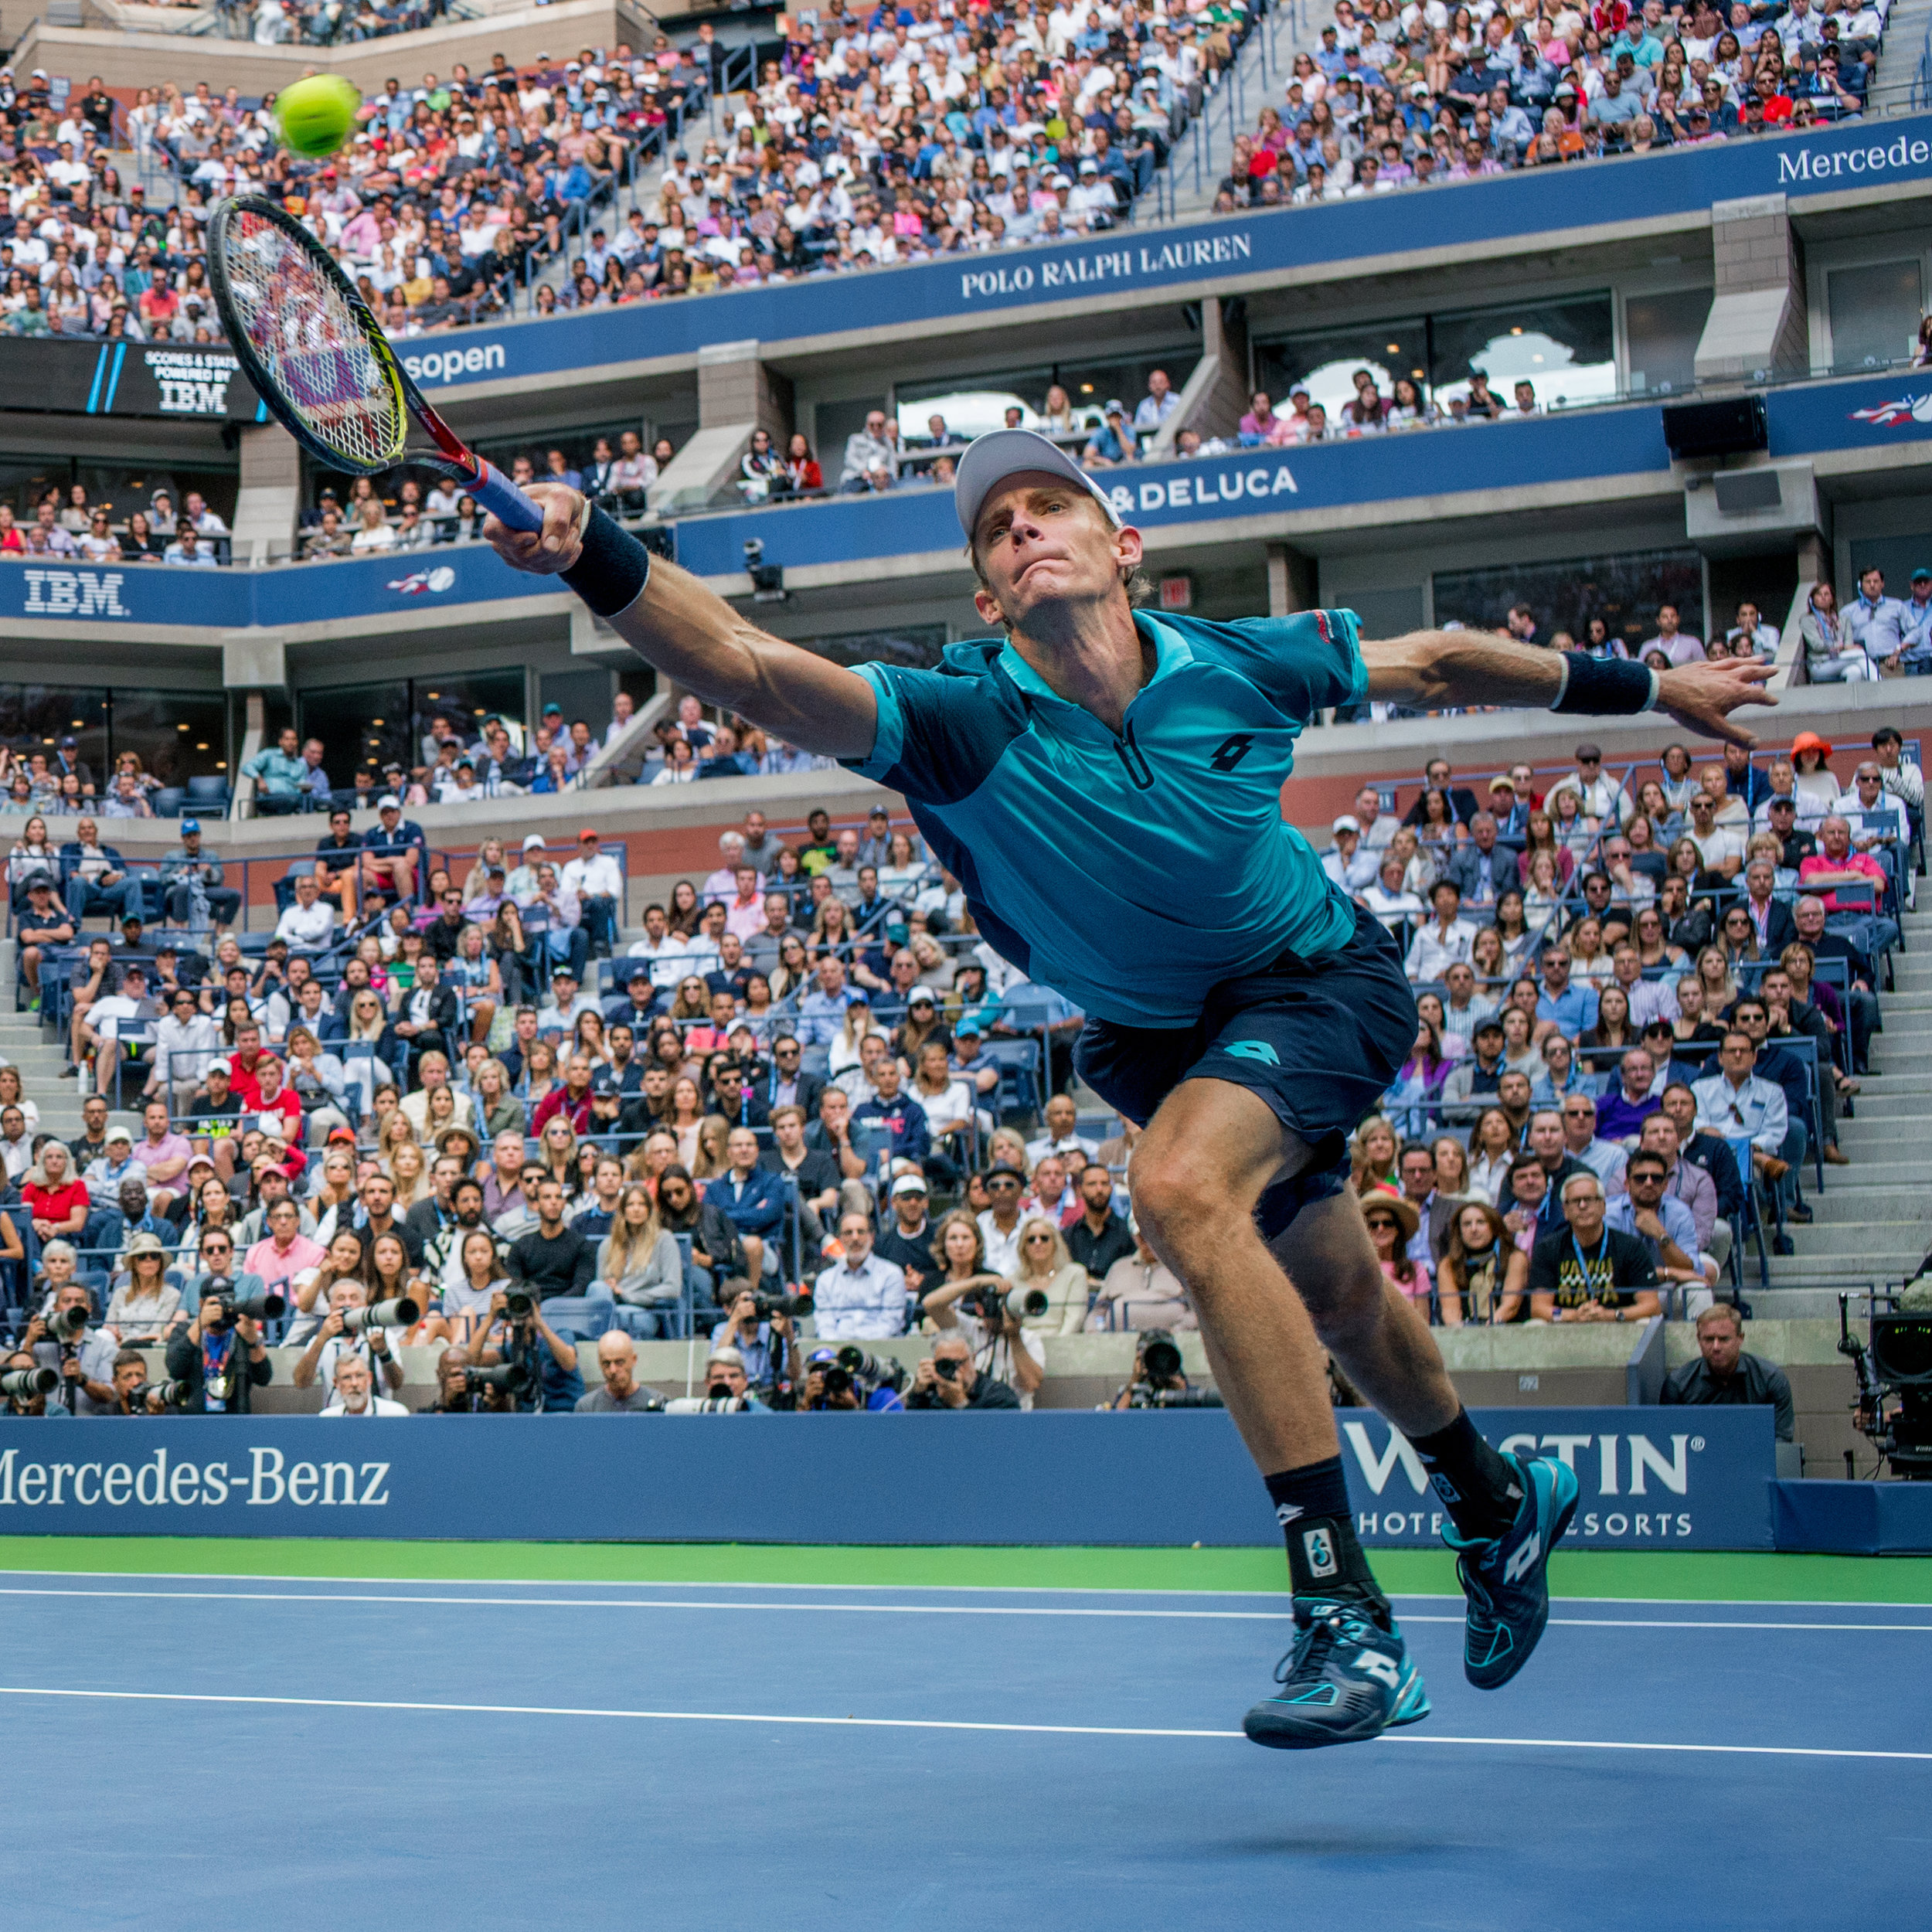 Kevin Anderson, 2017 U.S.Open final, Queens, New York.  Sony A9, Leica M 35mm f1.4 Summilux